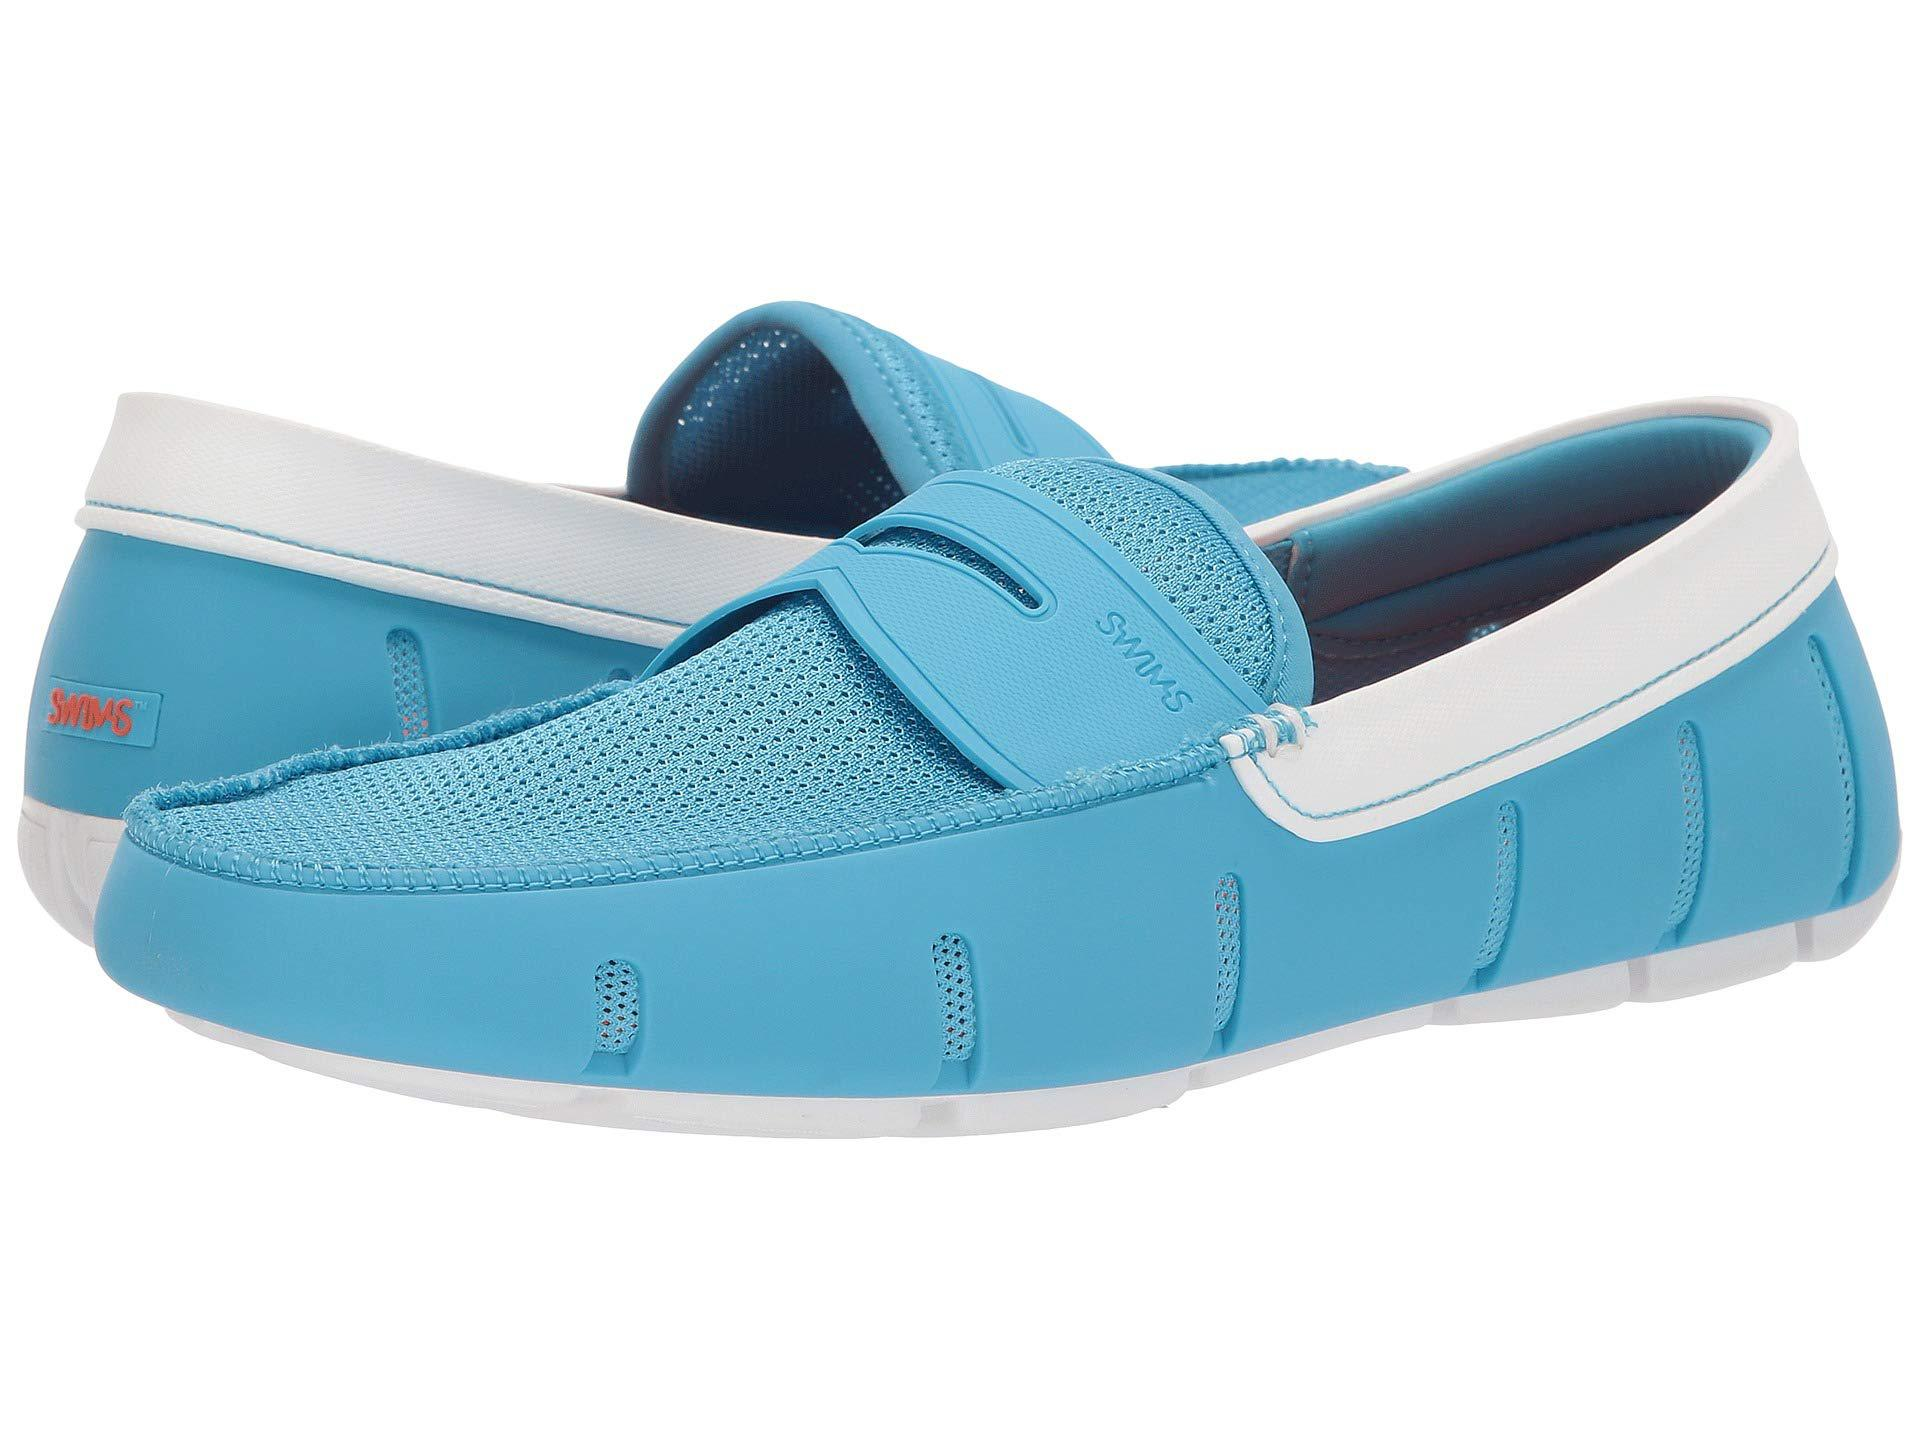 c1fa72bbfab Lyst - Swims Penny Loafer (norse Blue white) Men s Shoes in Blue for Men